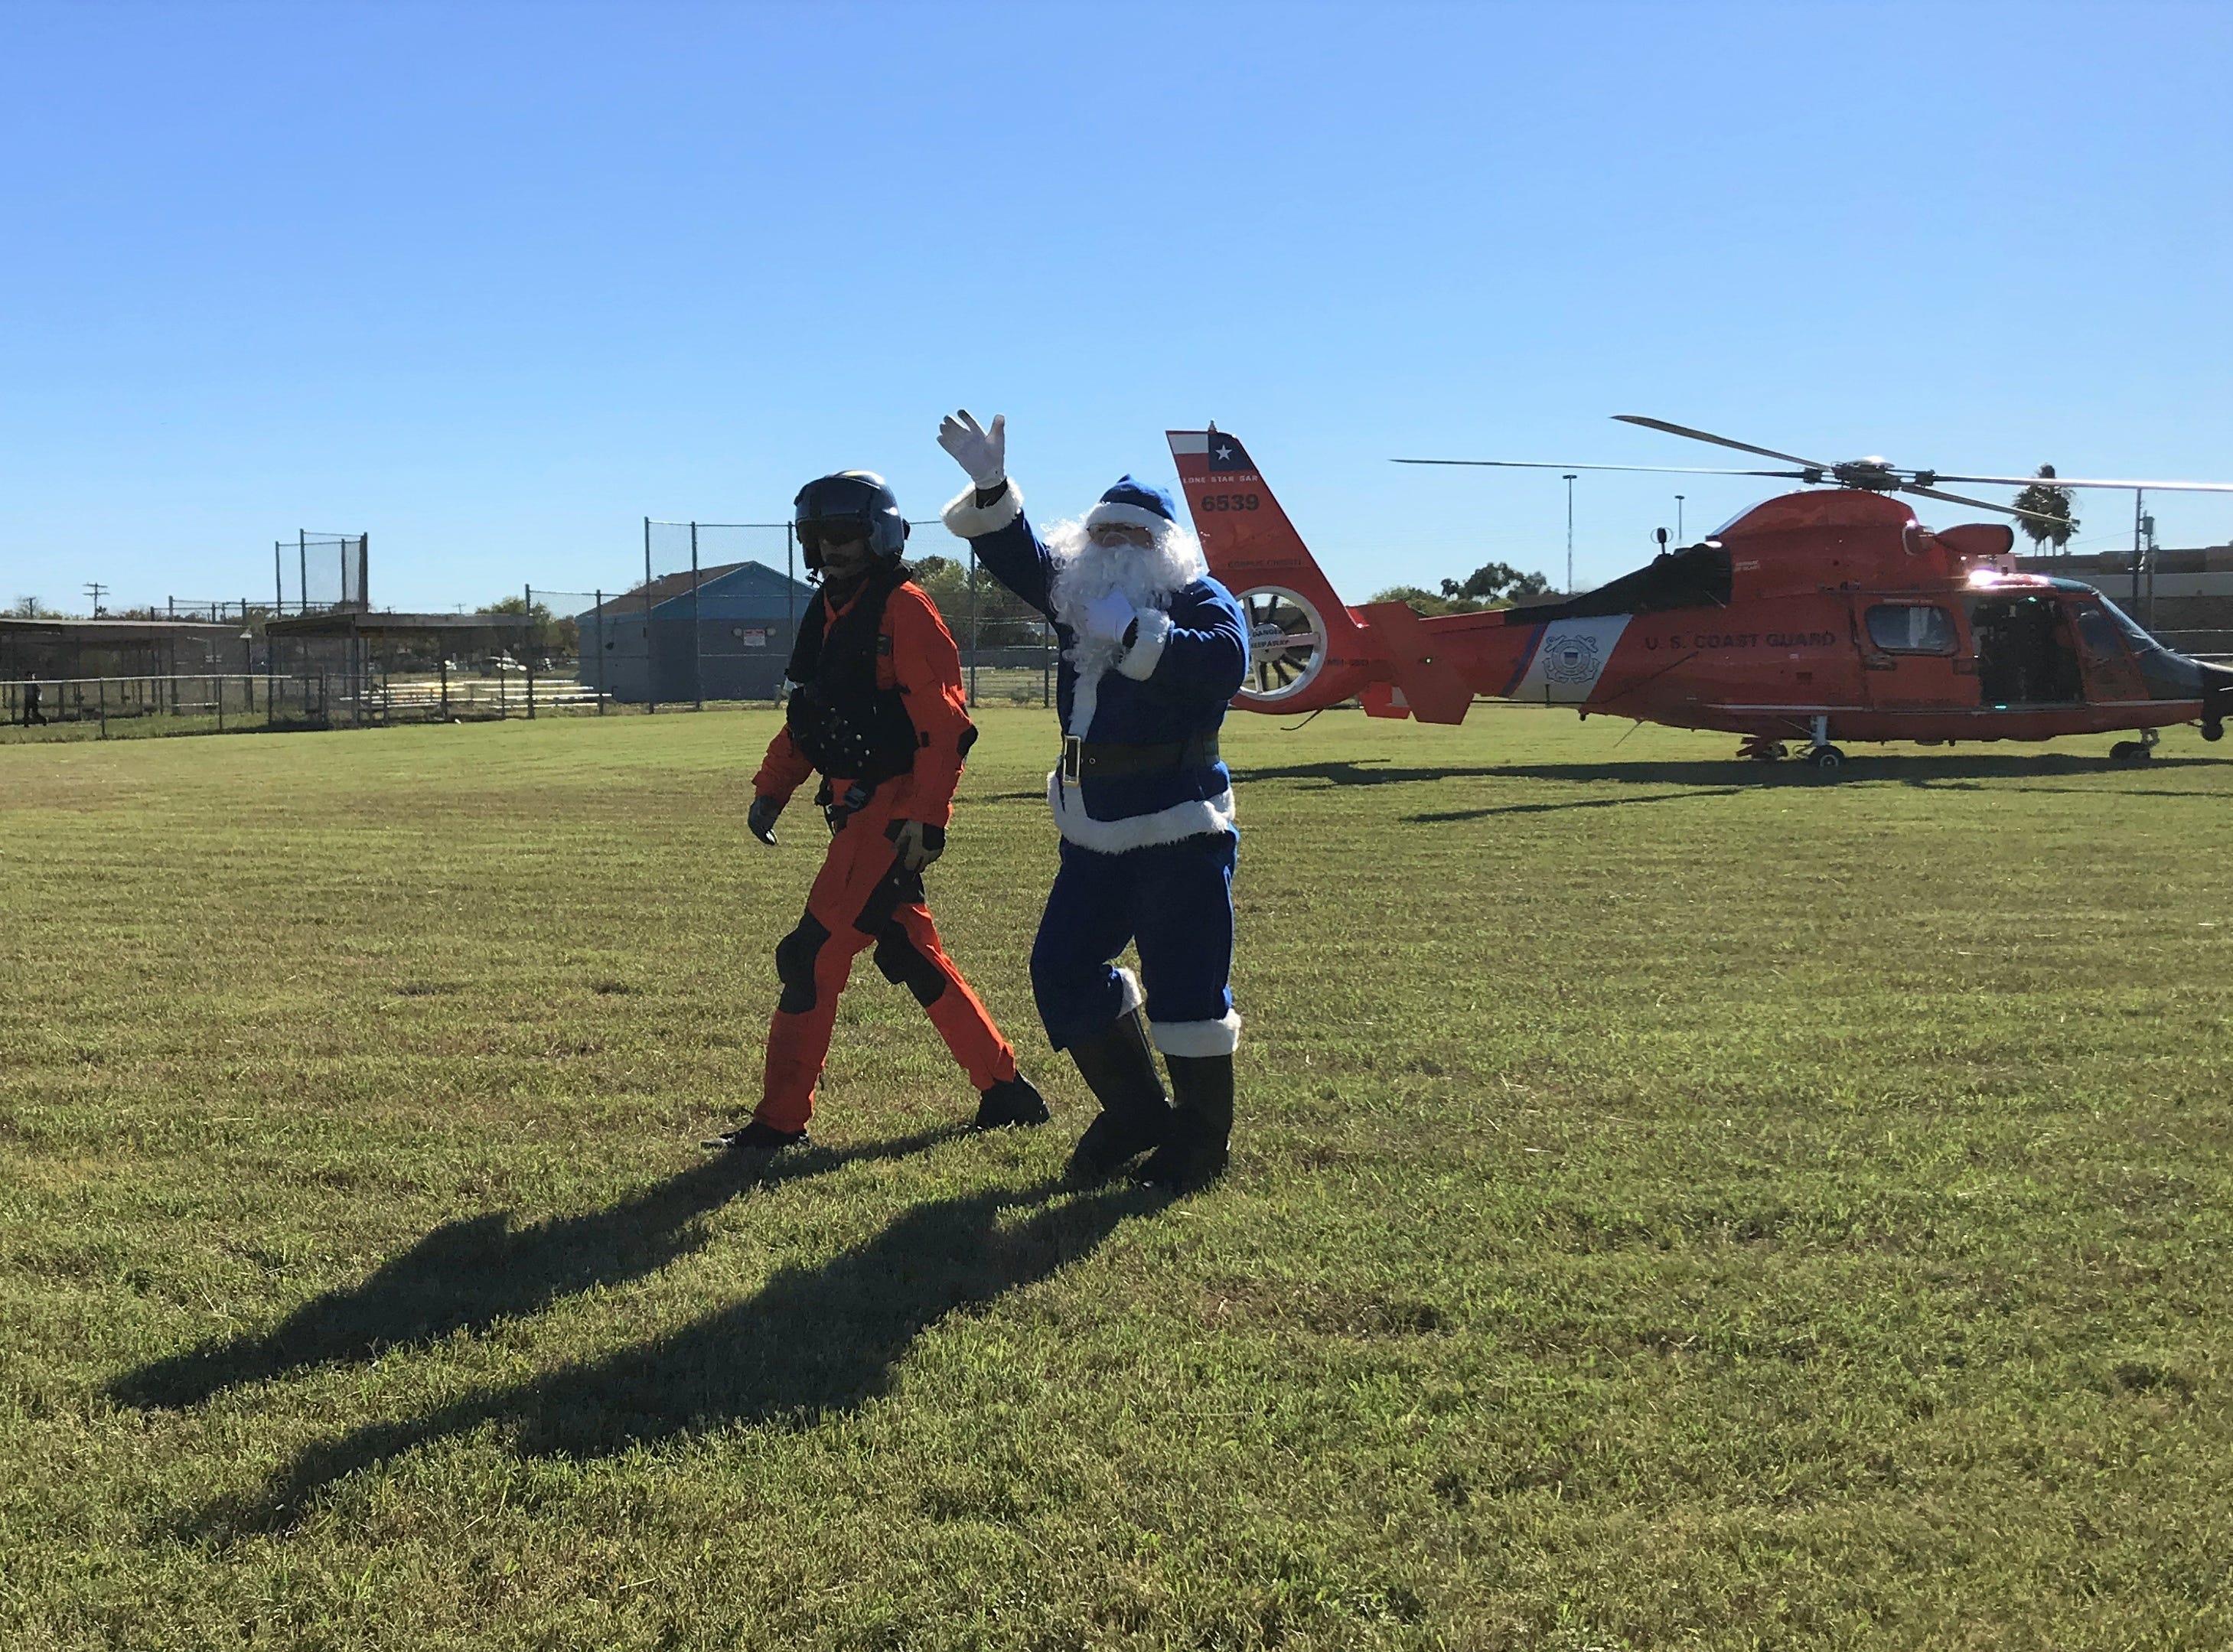 Blue Santa arrives in a U.S. Coast Guard helicopter to the Boys and Girls Club of the Coastal Bend on Saturday, Dec. 15, 2018. Santa brought dozens of toys for the children at the club.